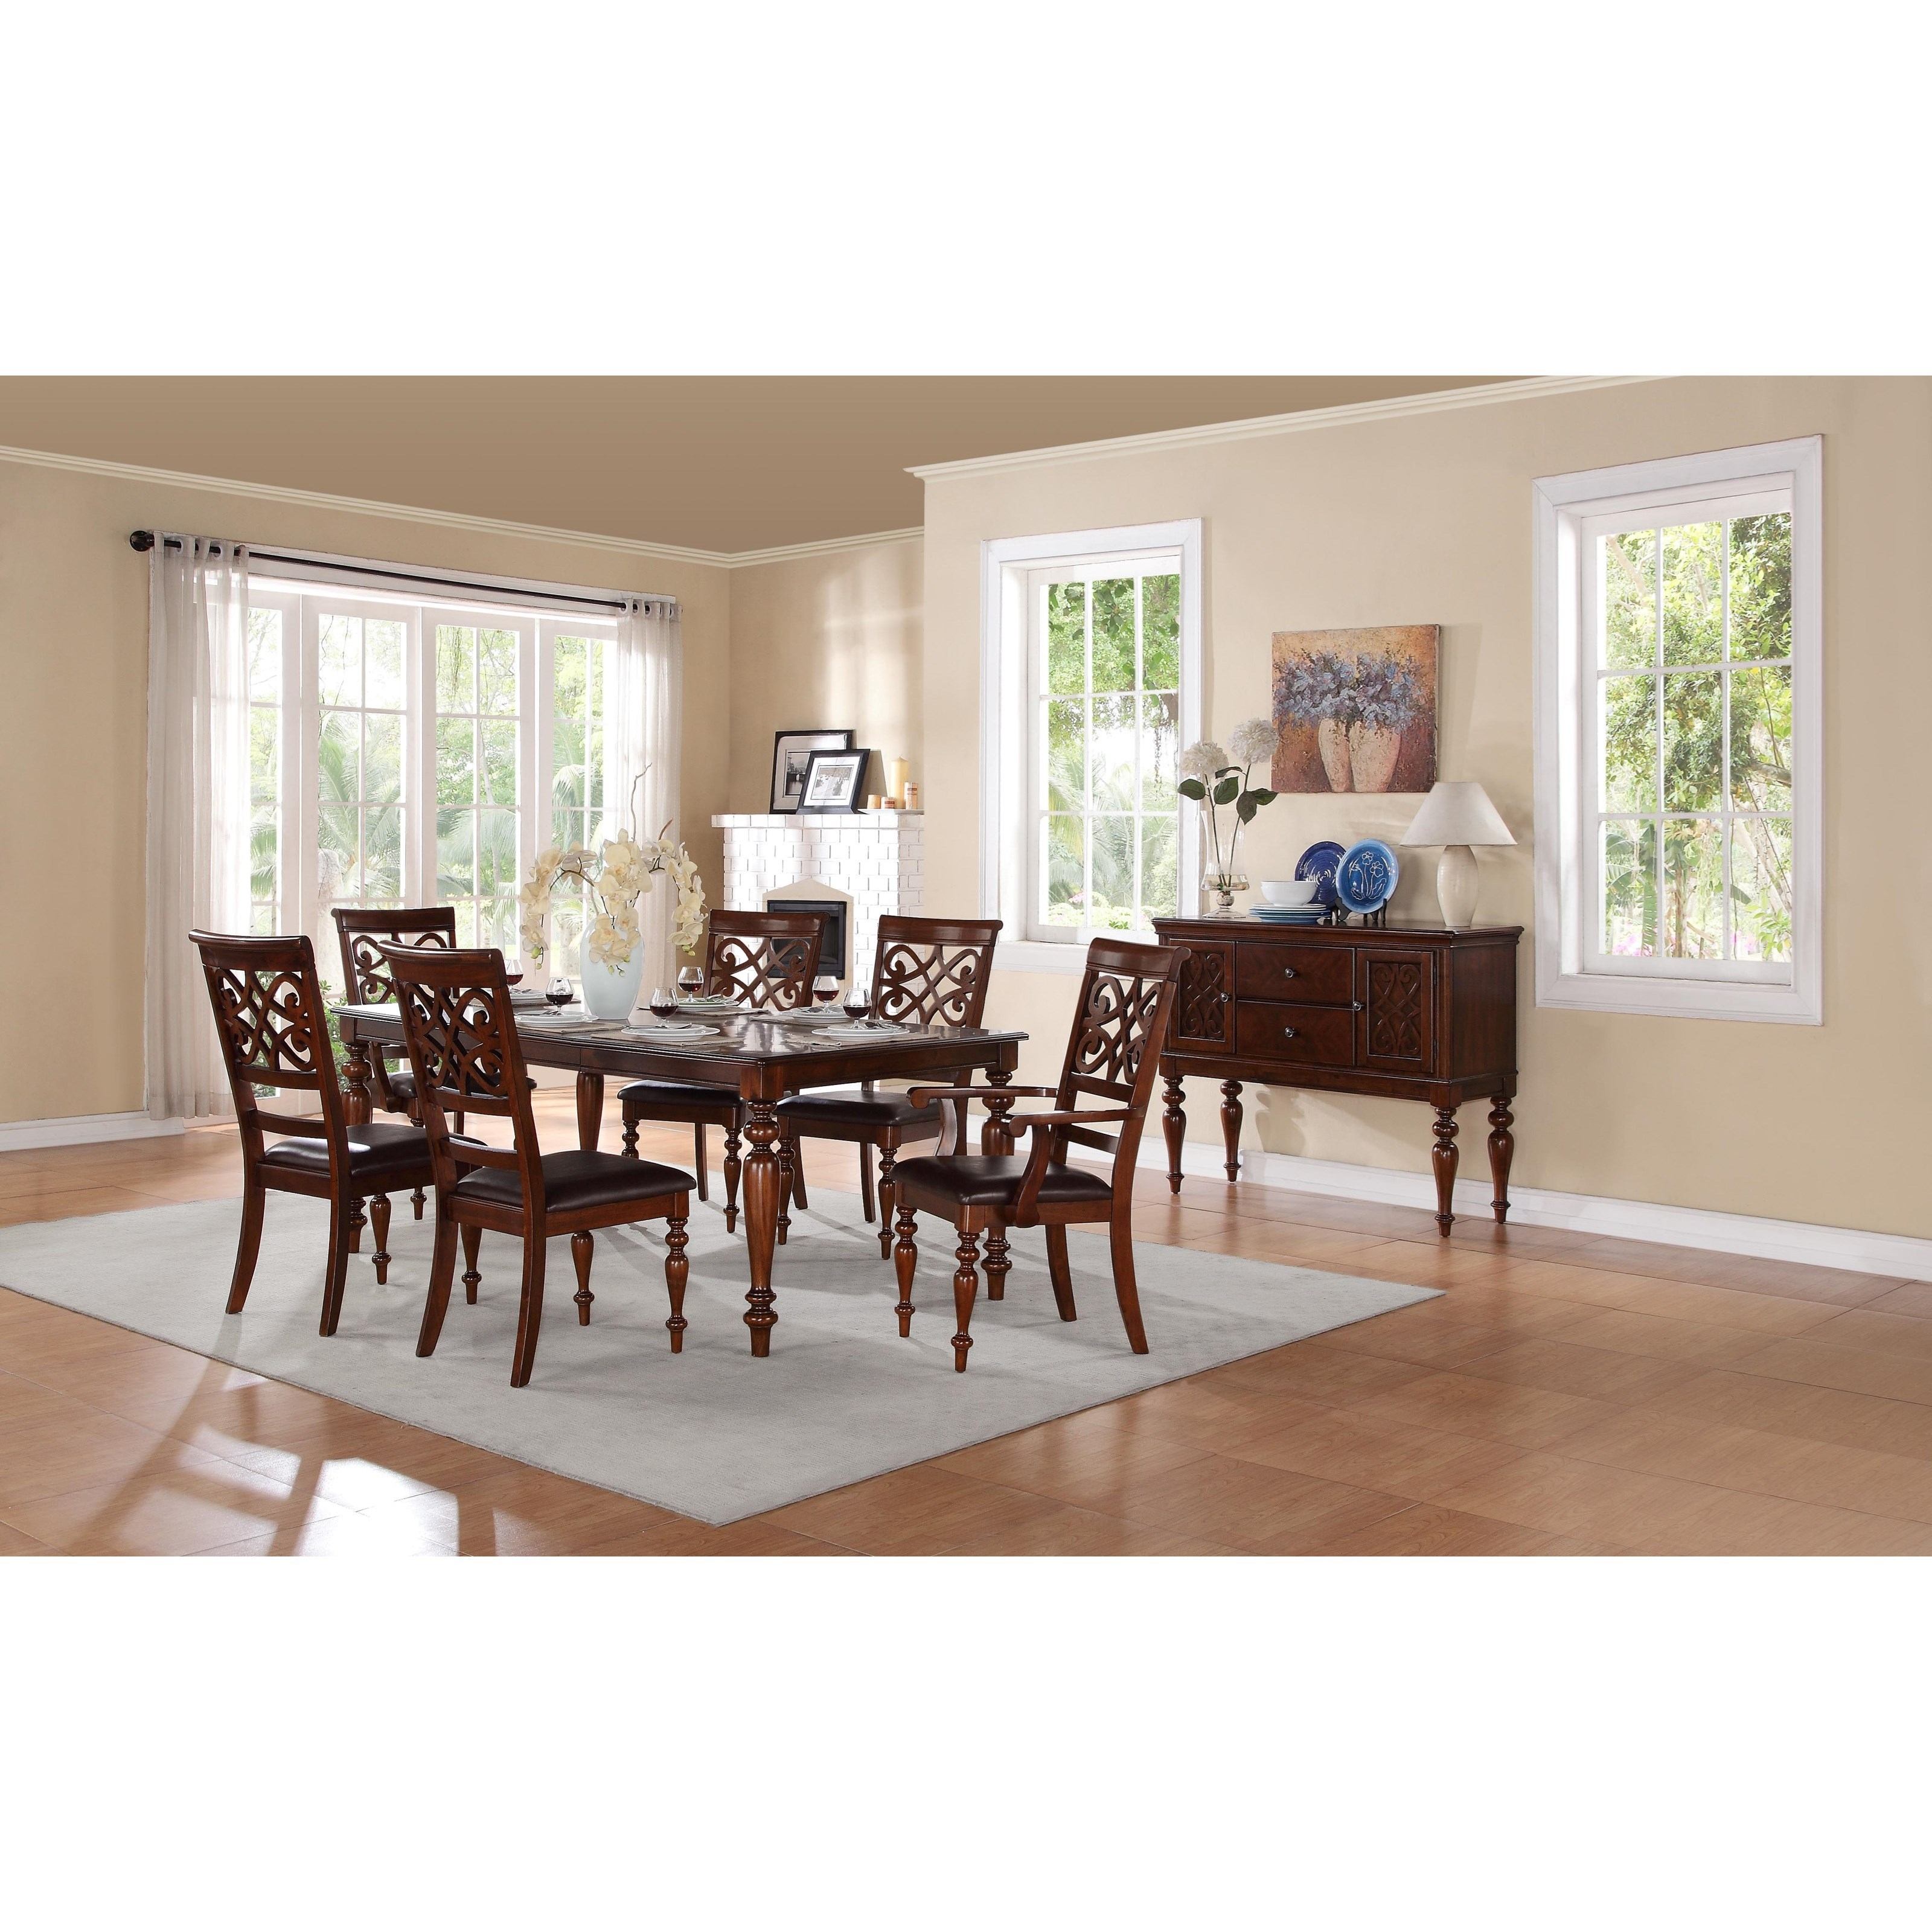 Homelegance Creswell Traditional Formal Dining Room Group